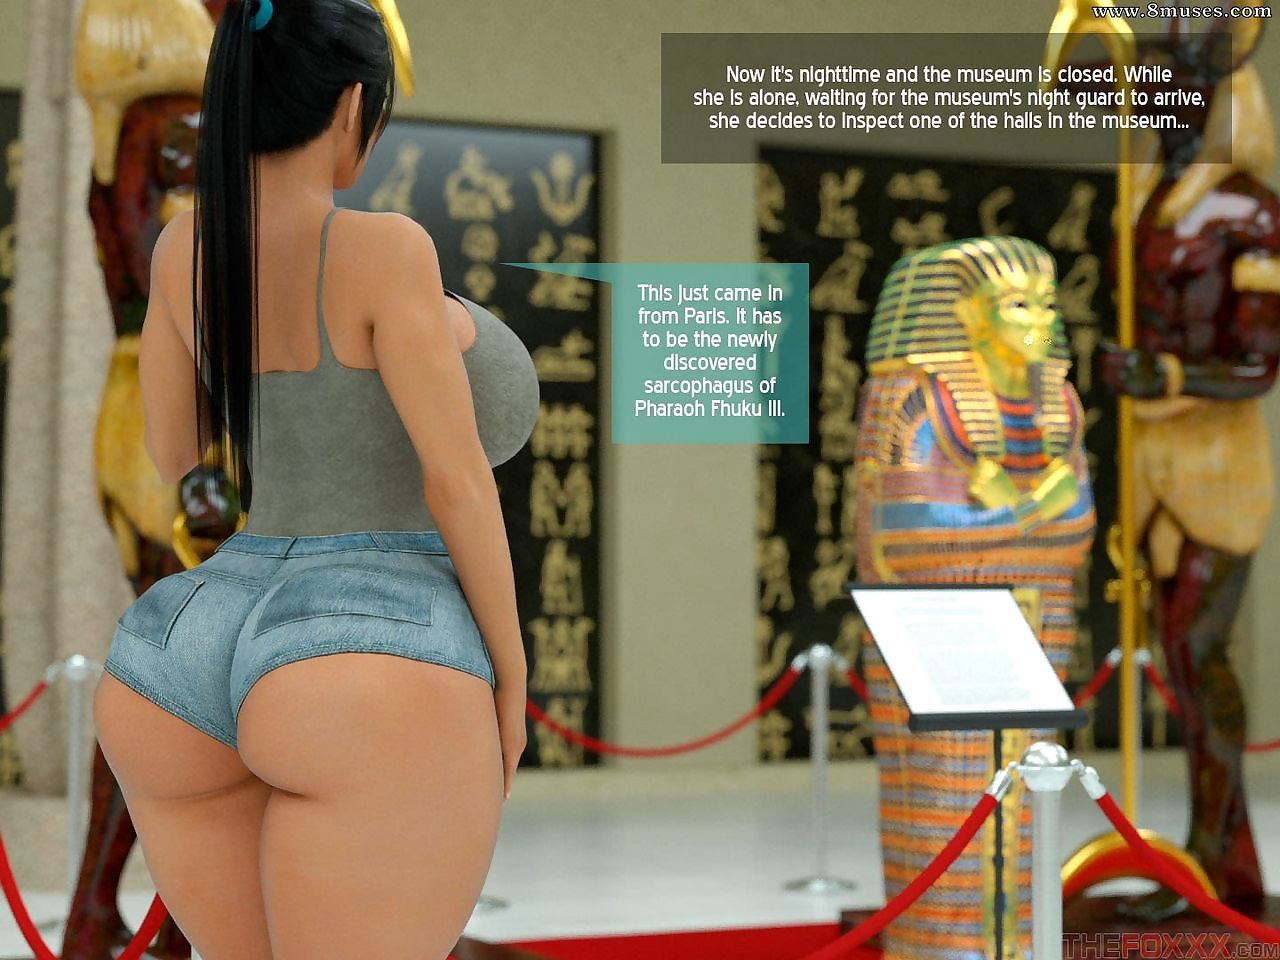 THE FOXXX - Horny Mummy in the Museum